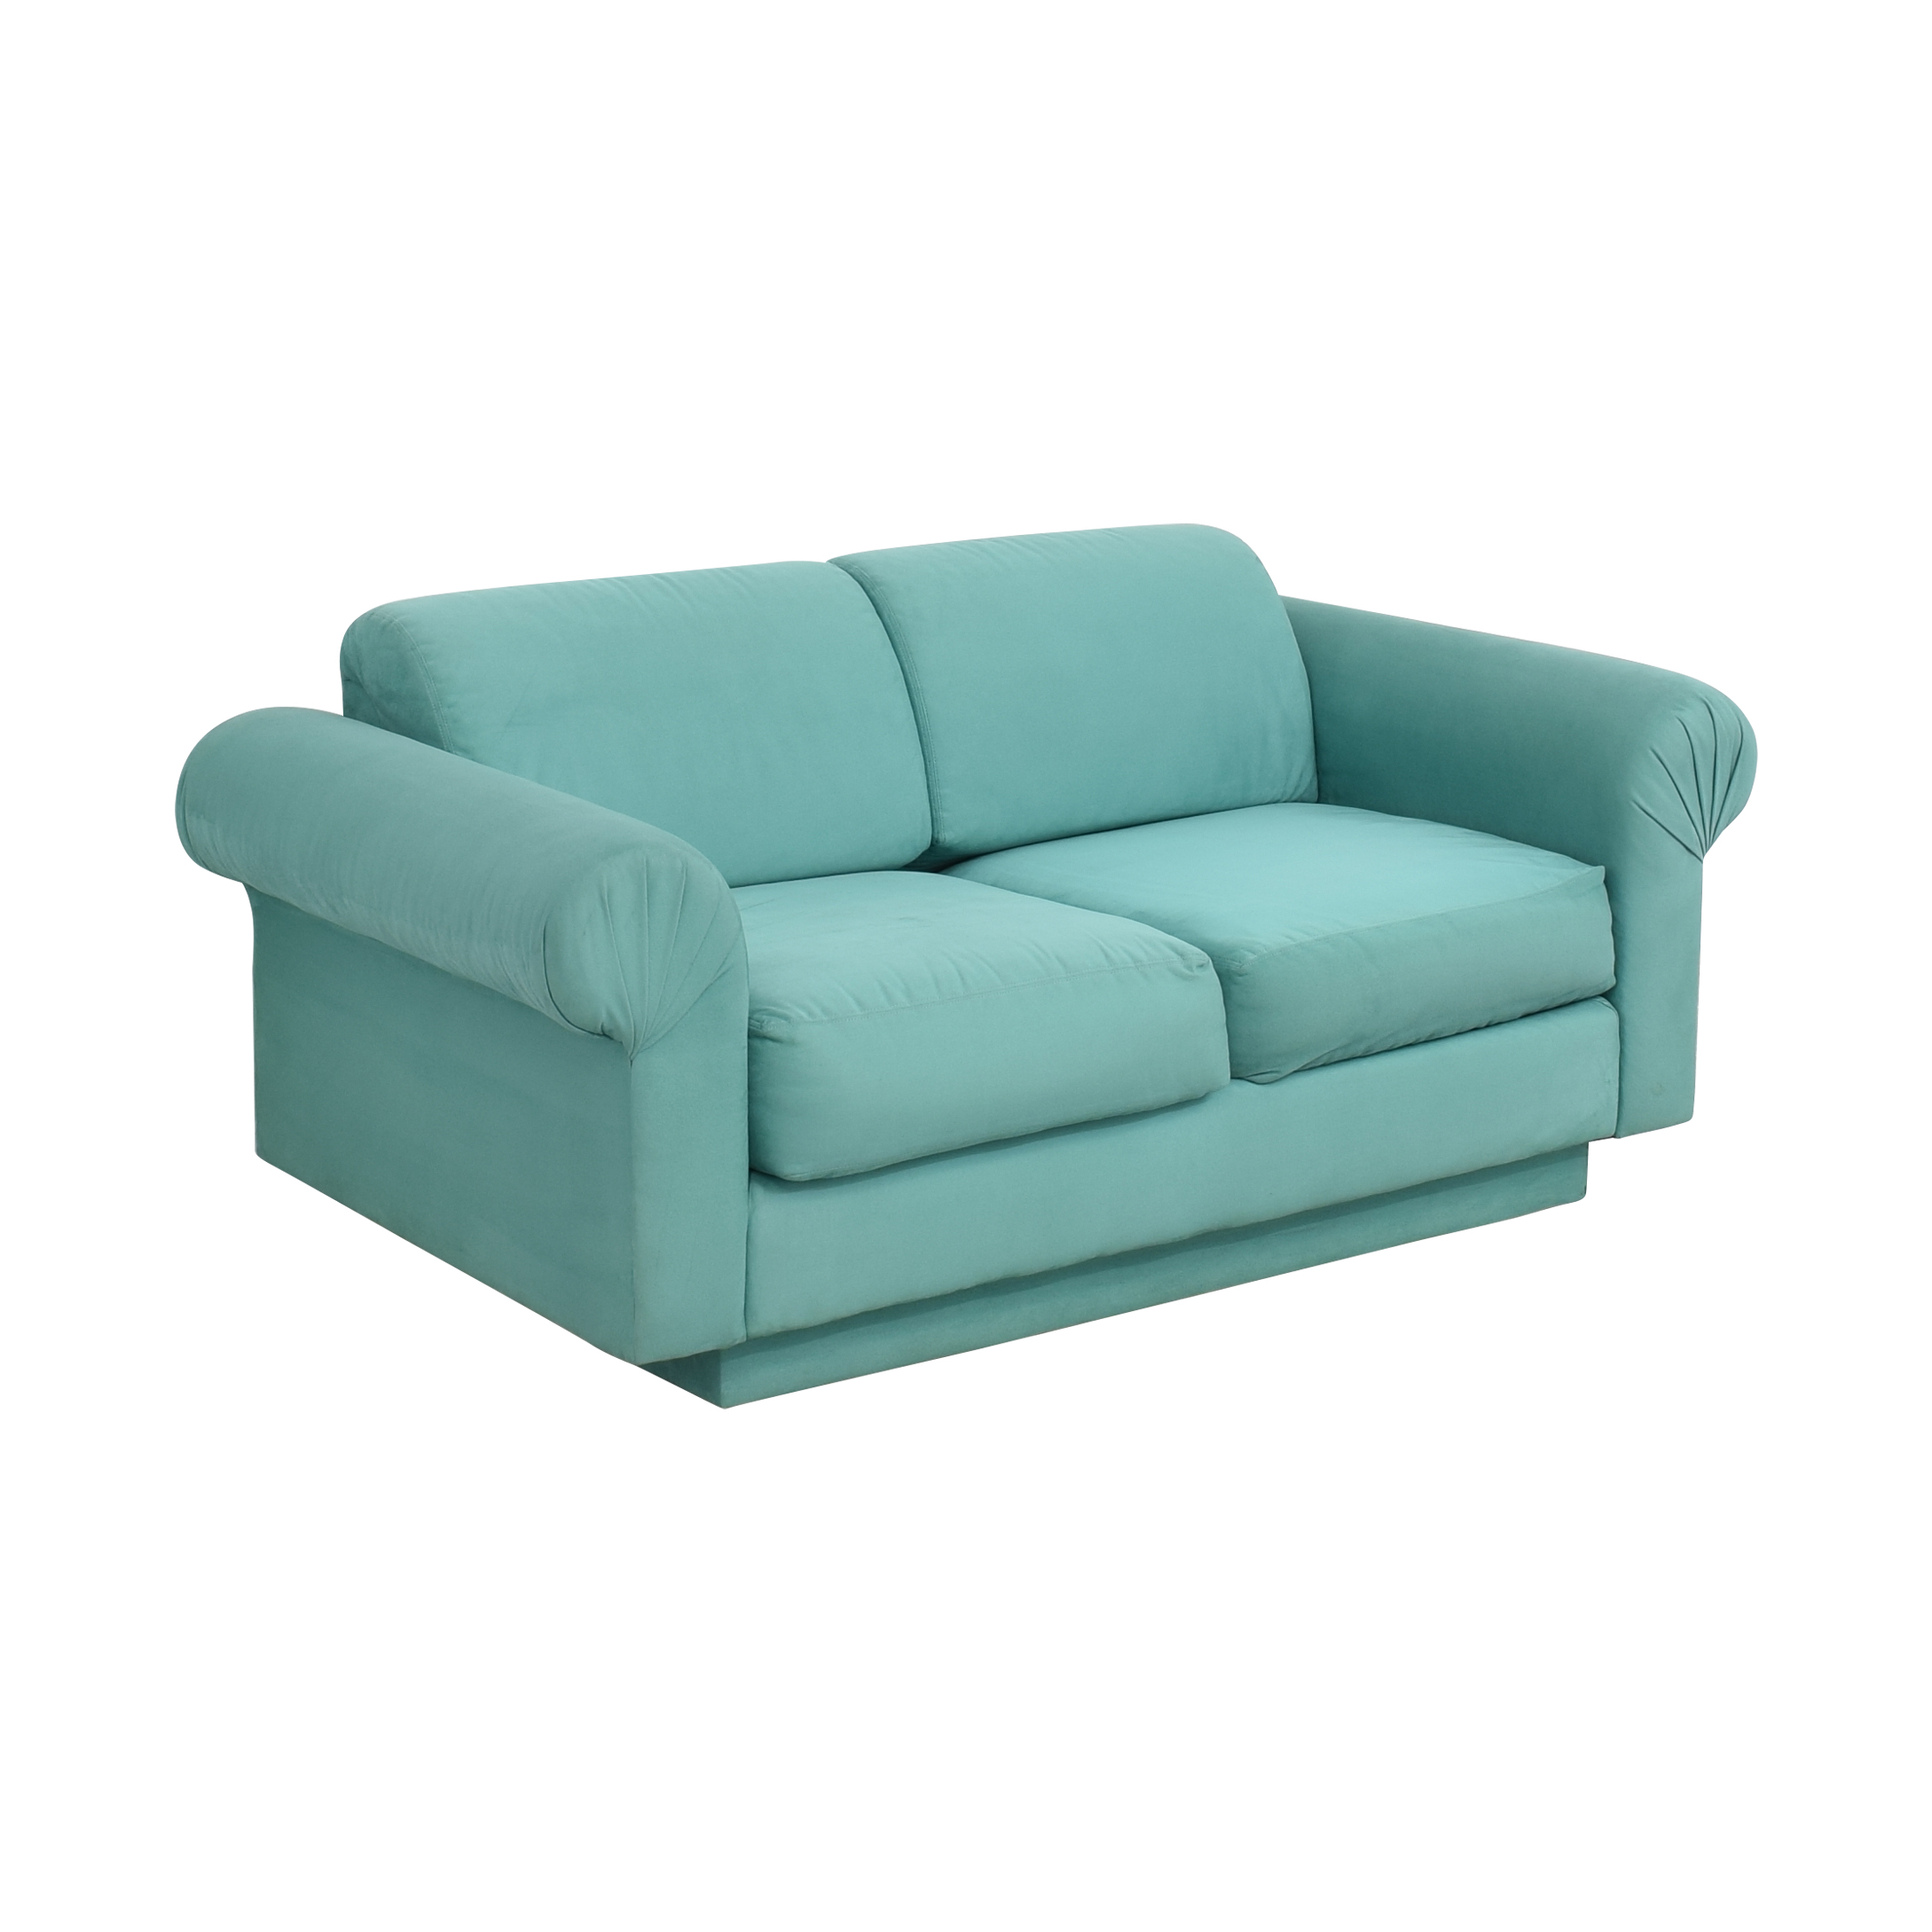 Directional Furniture Directional Furniture Suede Sofa used